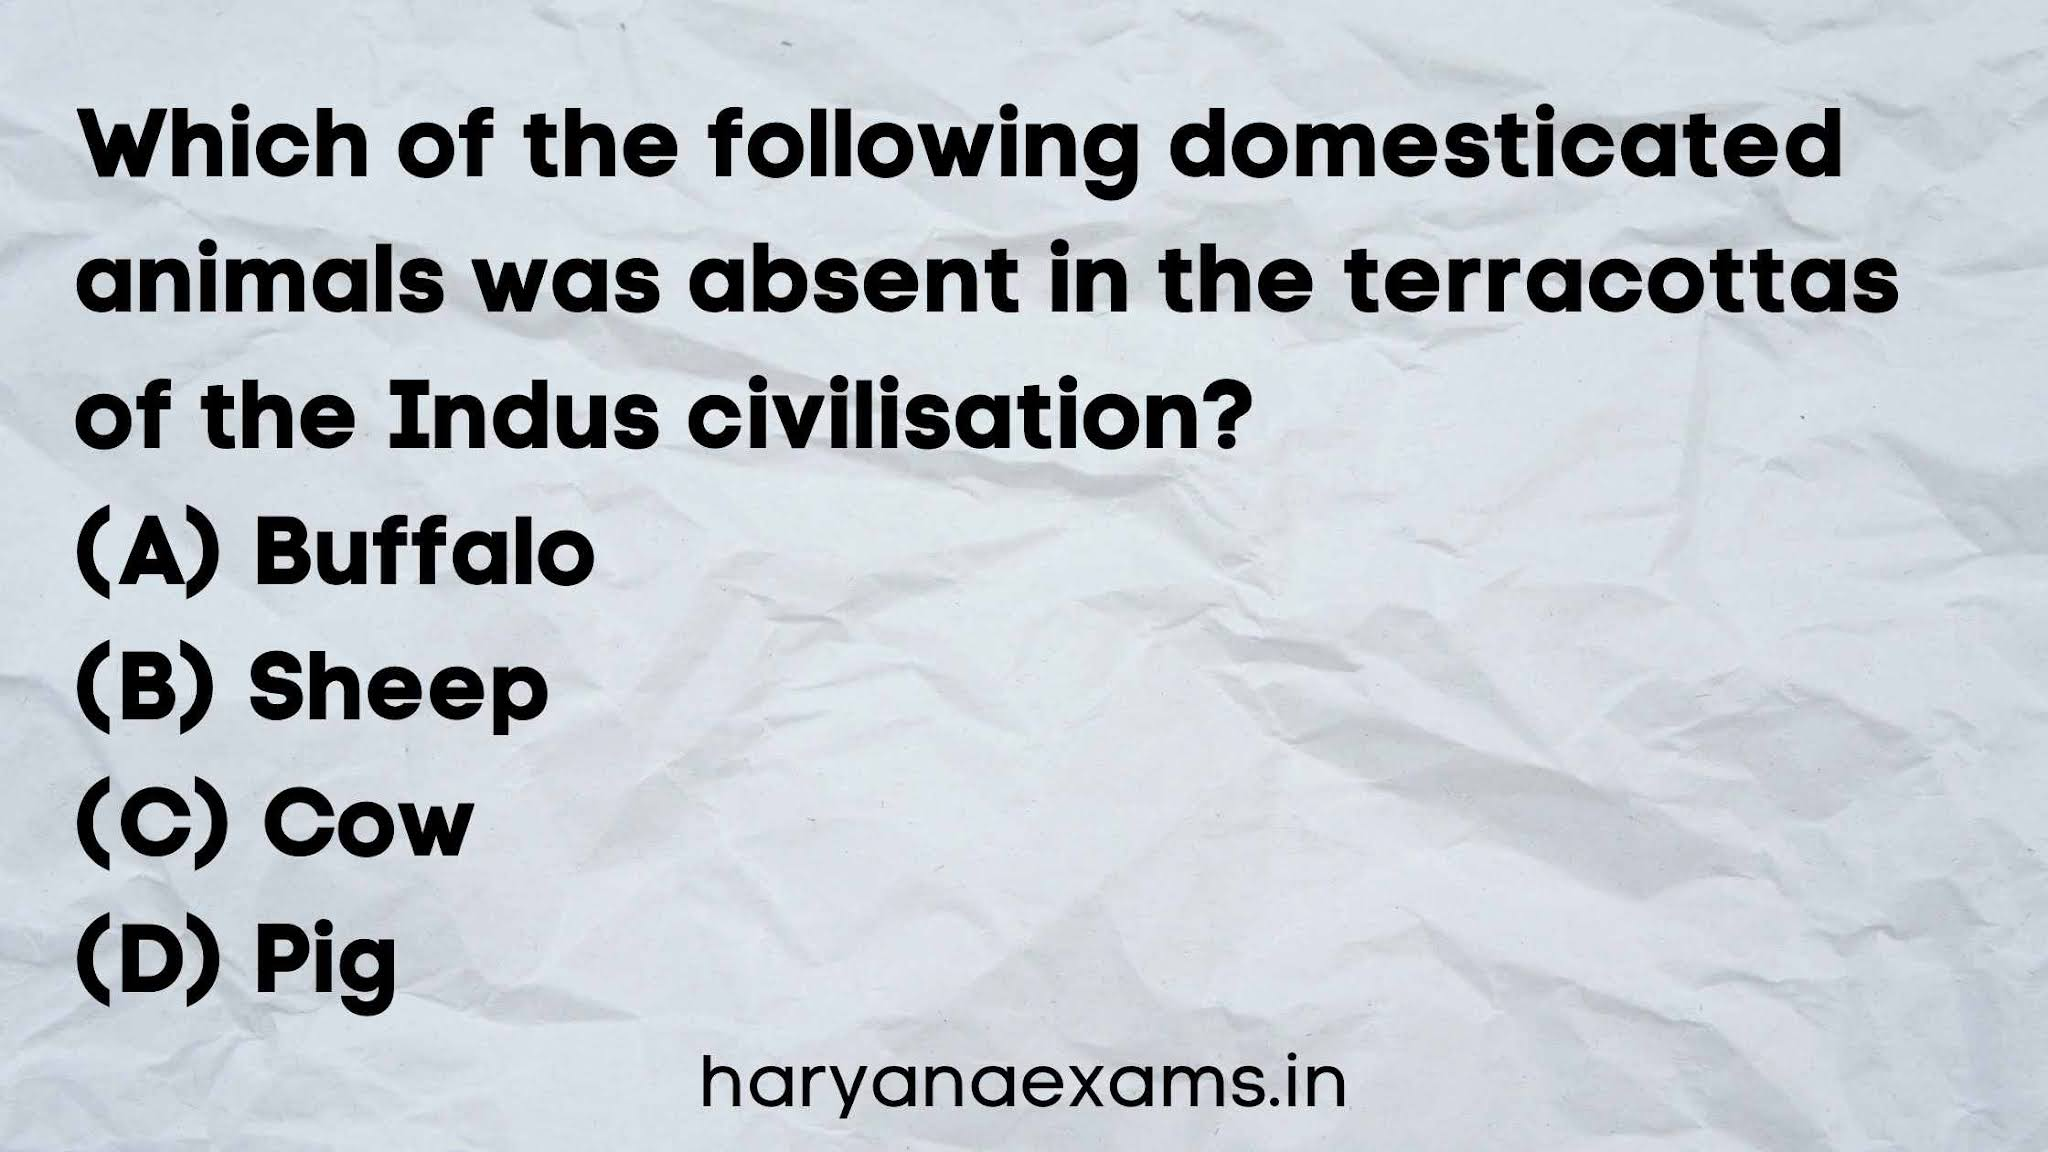 Which of the following domesticated animals was absent in the terracottas of the Indus civilisation?   (A) Buffalo   (B) Sheep   (C) Cow   (D) Pig